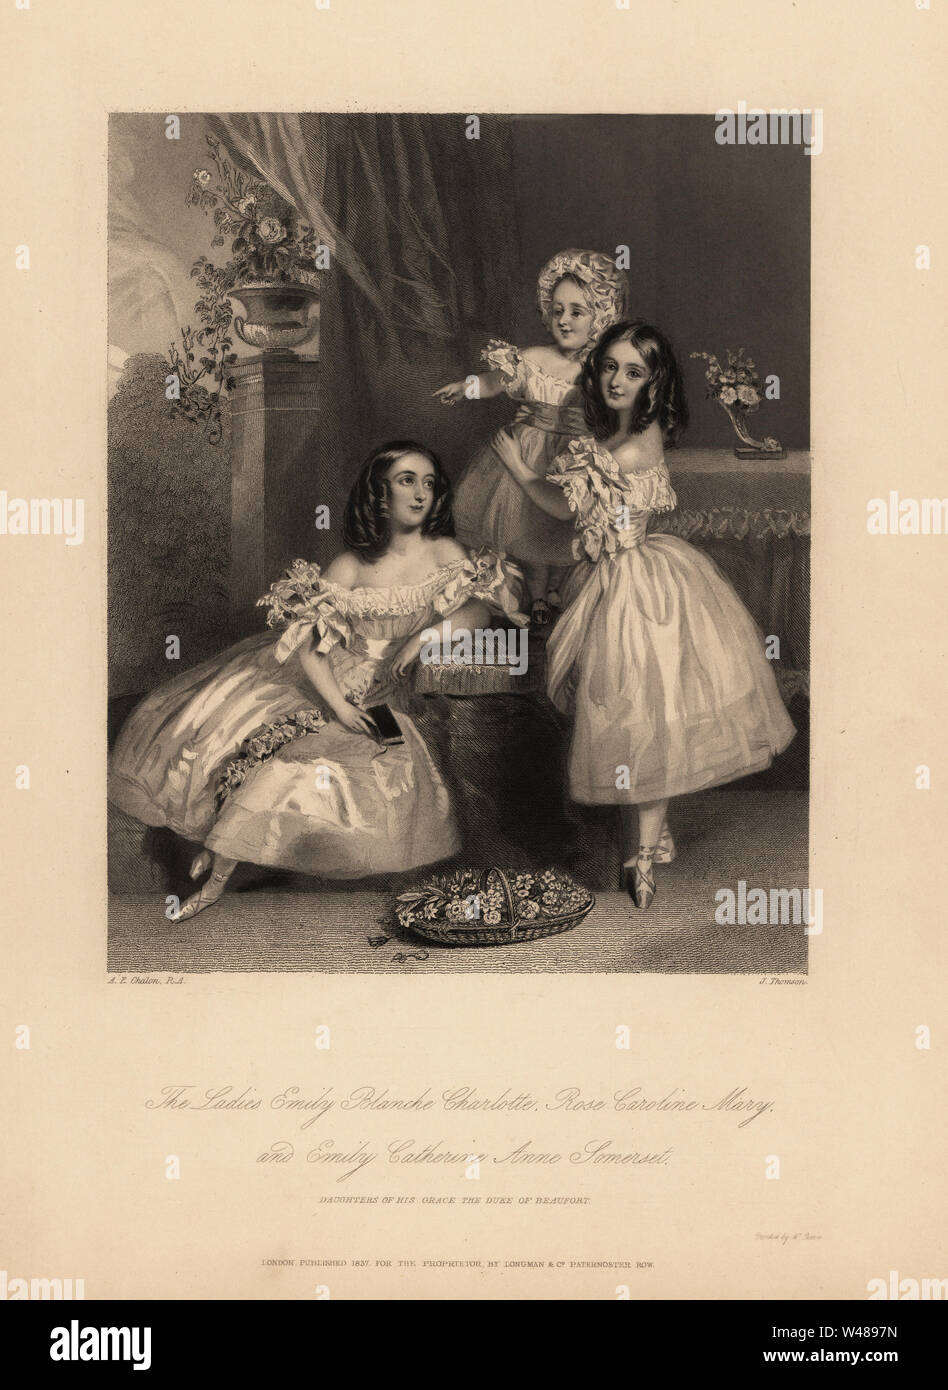 Portrait of Emily Blanche Charlotte, Rose Caroline and Emily Catherine Anne Somerset, daughters of Henry Somerset,  7th Duke of Beaufort. Three young sisters with ringlets in satin dresses with ribbons and lace, ballet shoes. Steel engraving by J. Thomson after an illustration by Alfred Edward Chalon from Charles Heath's Portraits of the Children of the Nobility, Longmont, London, 1838. Stock Photo